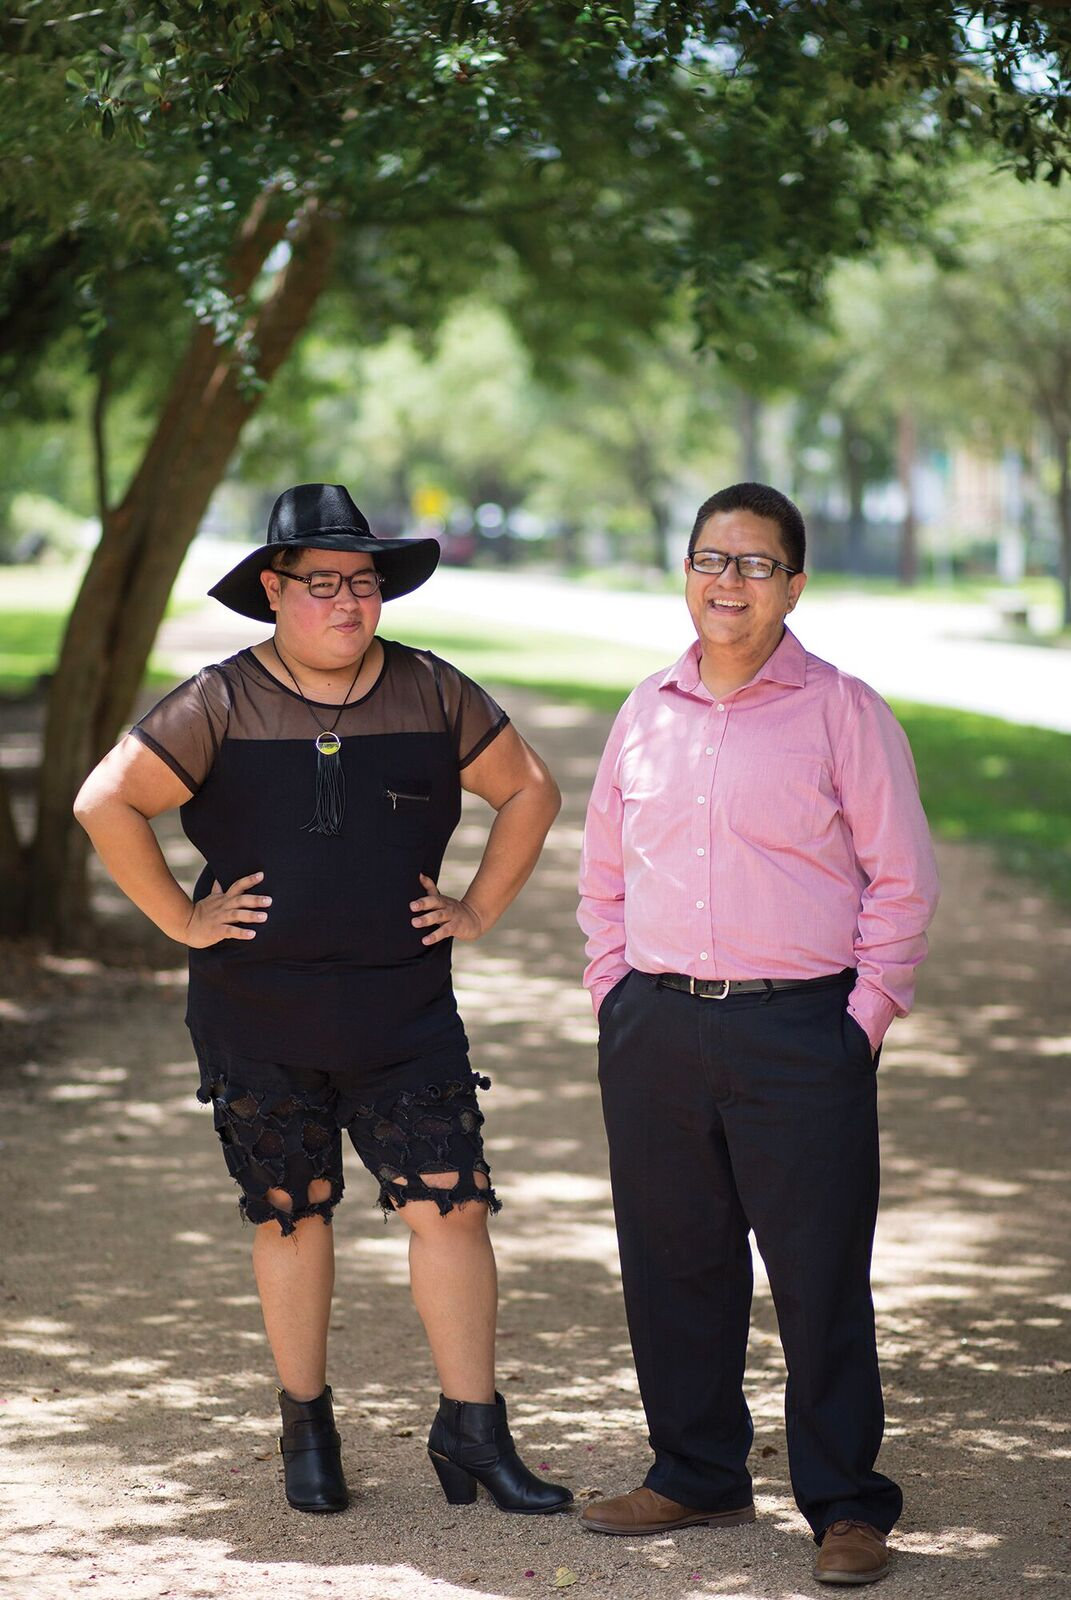 The Houston Intersex Society